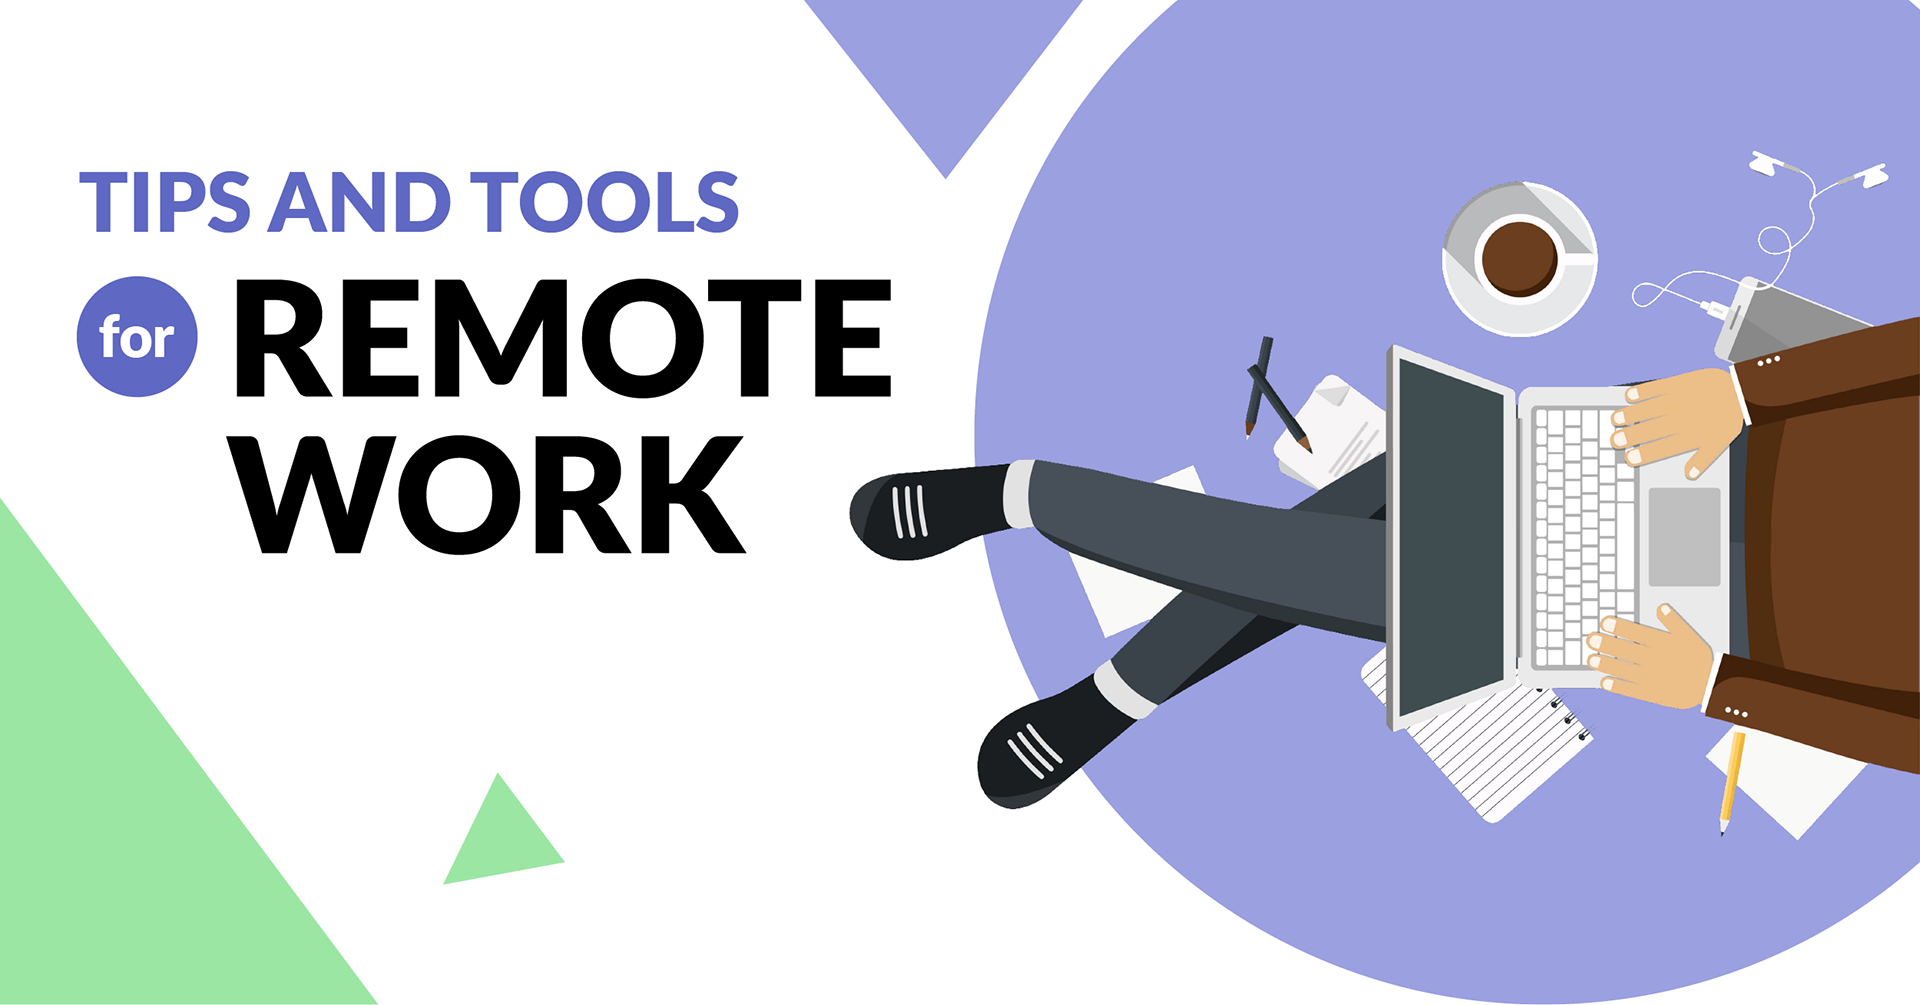 Tips_and_Tools_for_Remote_Work